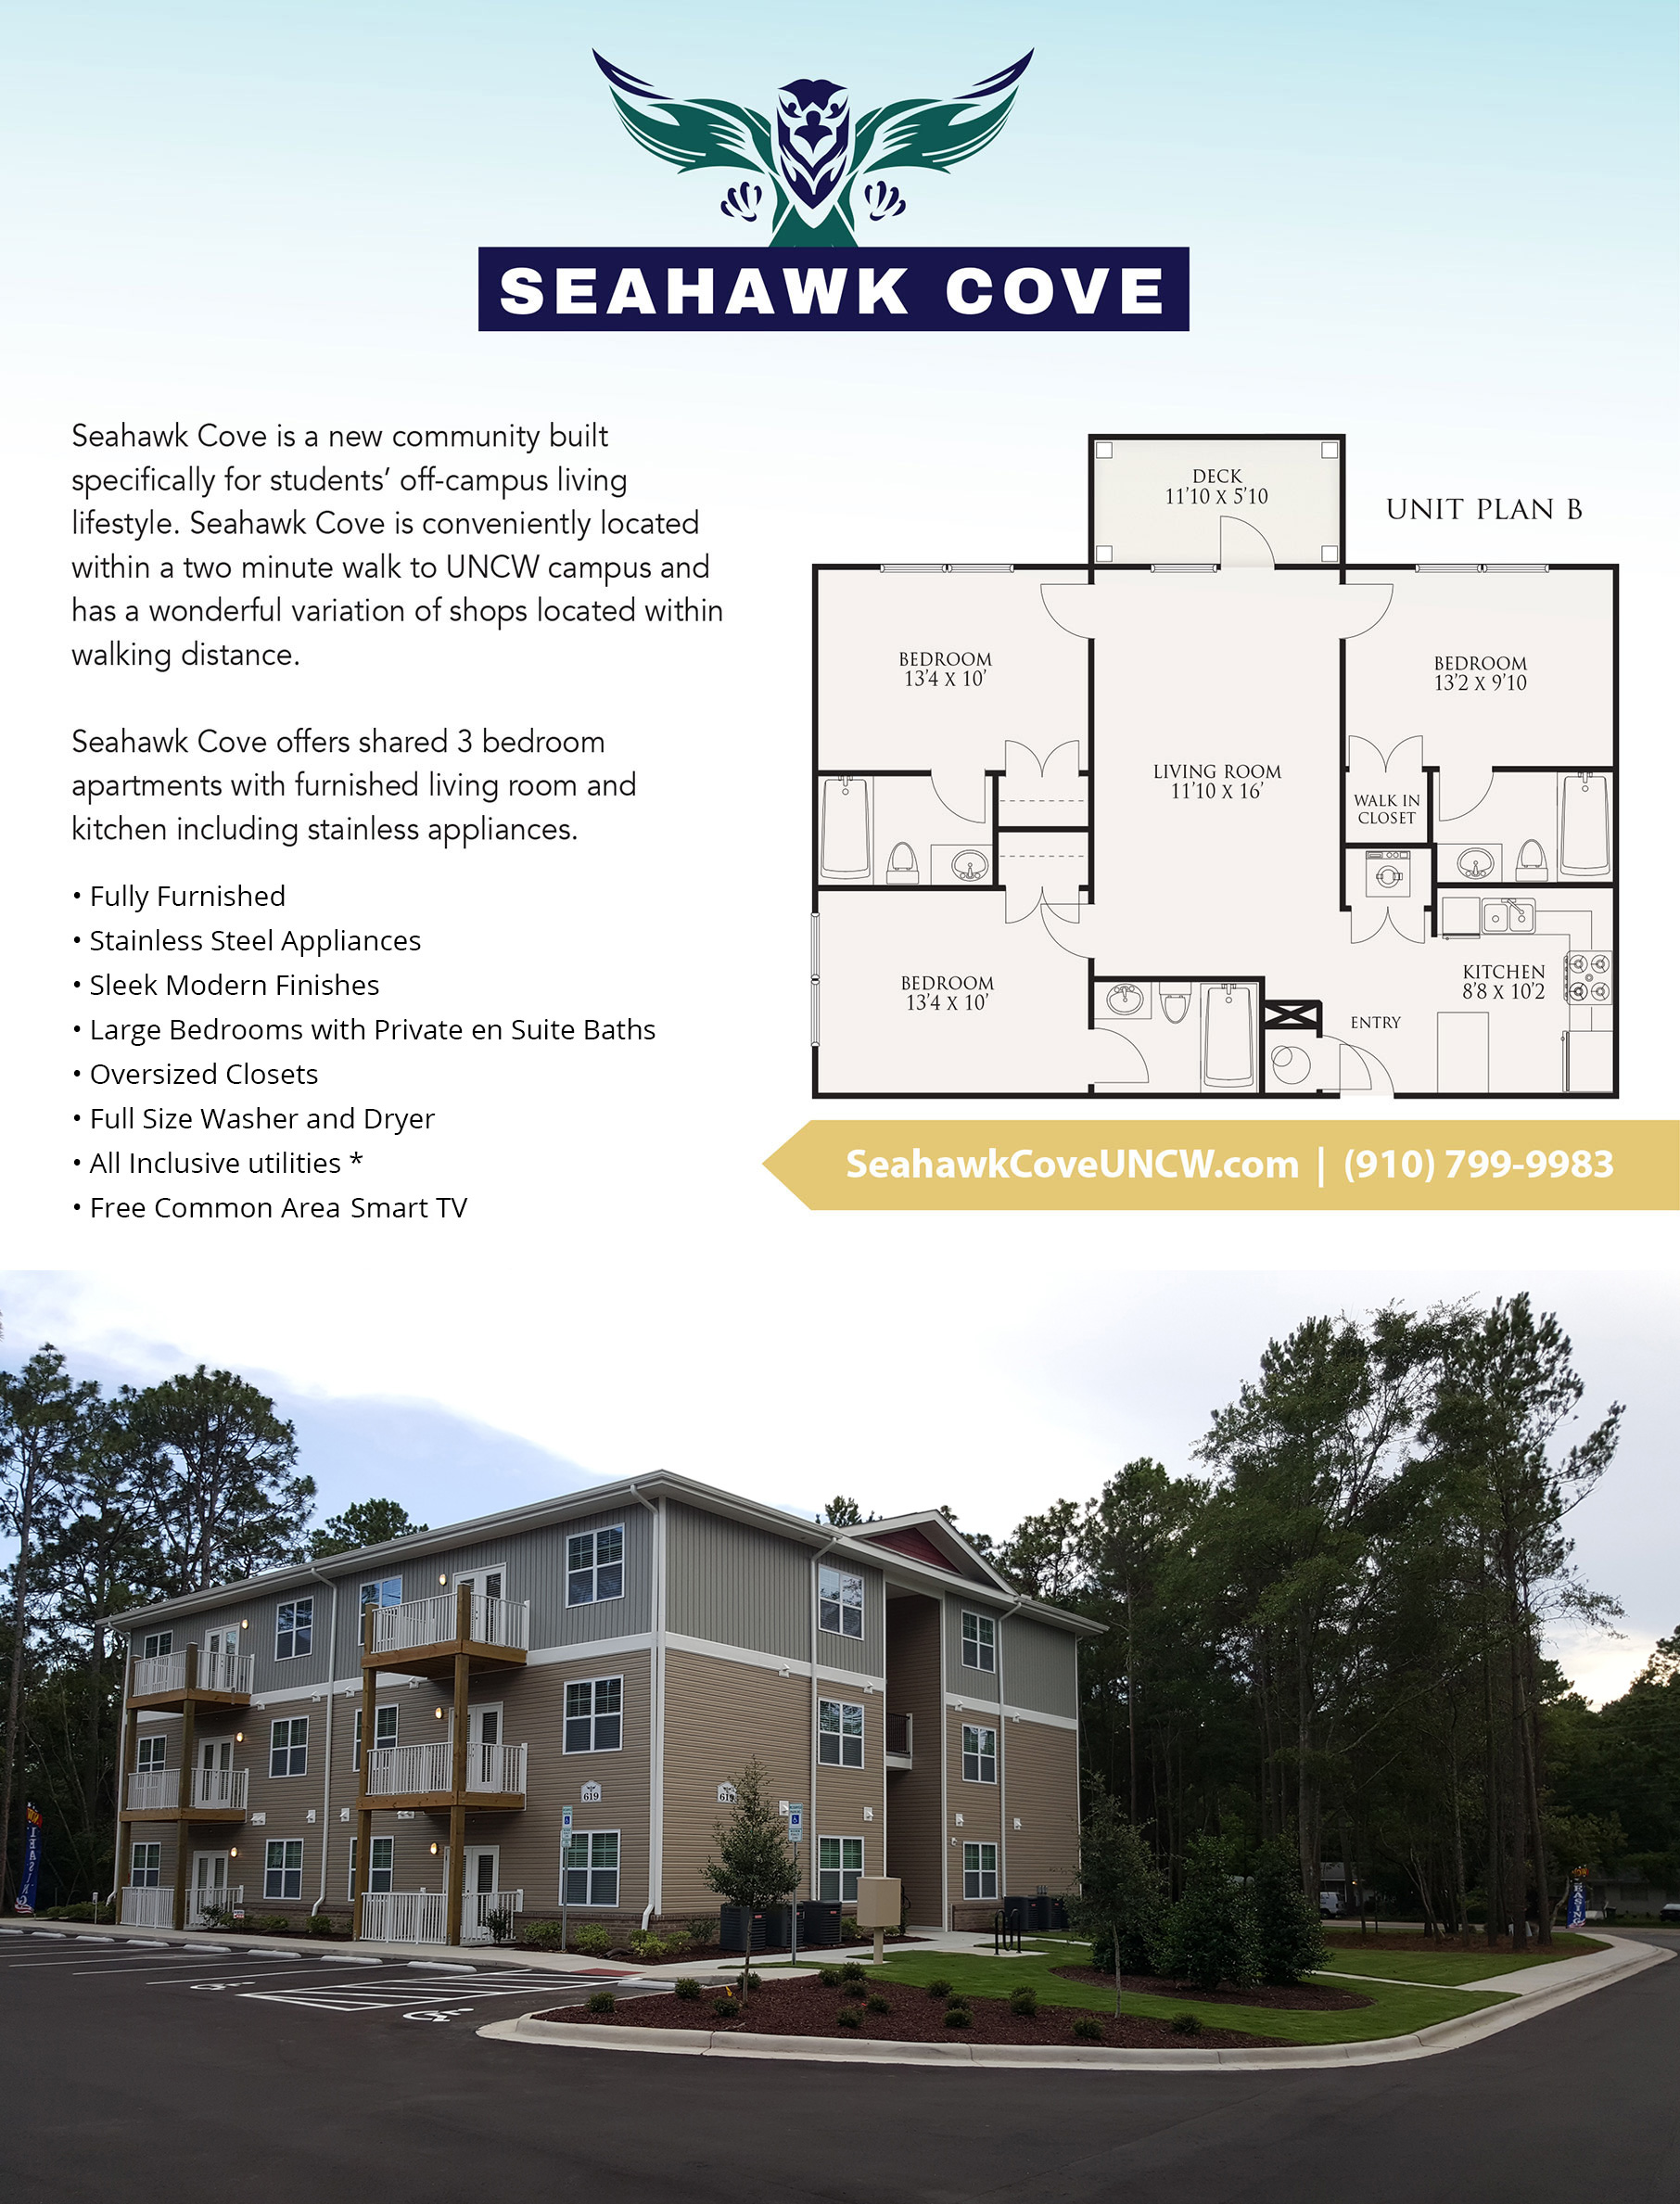 Seahawk Cove Student Living